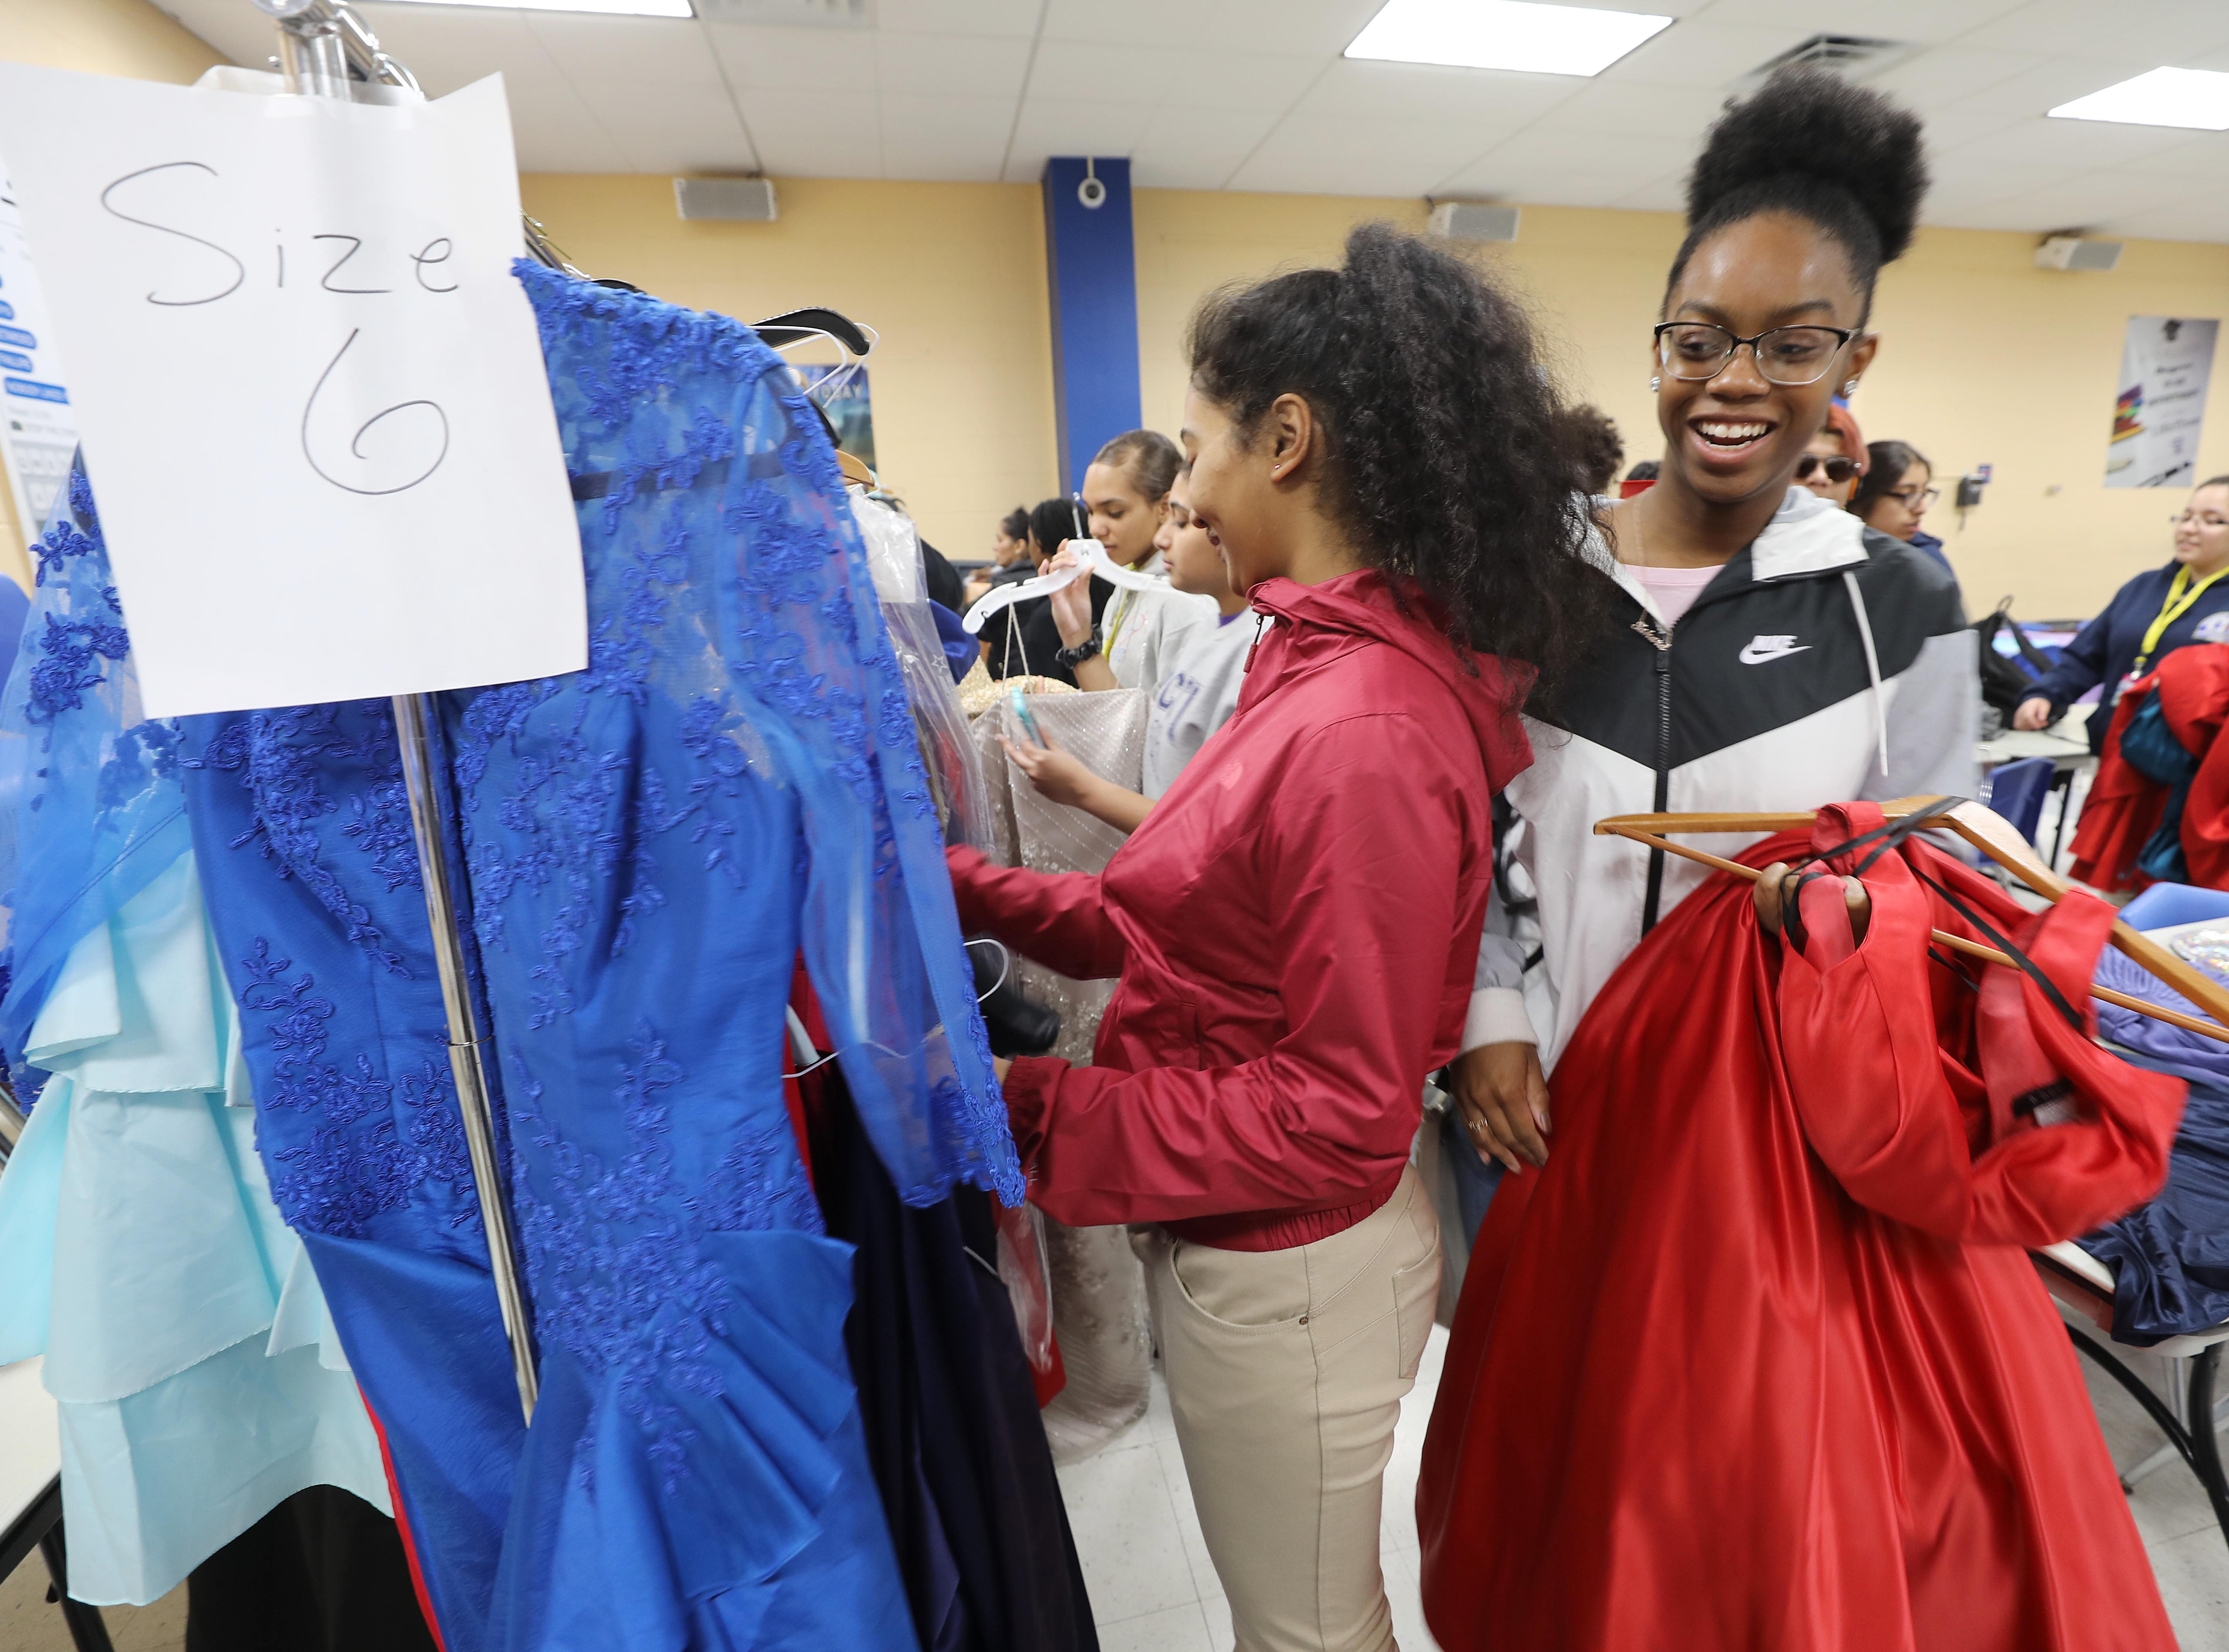 Looking for a dress at the annual Prom Gown Giveaway held at Passaic County Technical Institute.